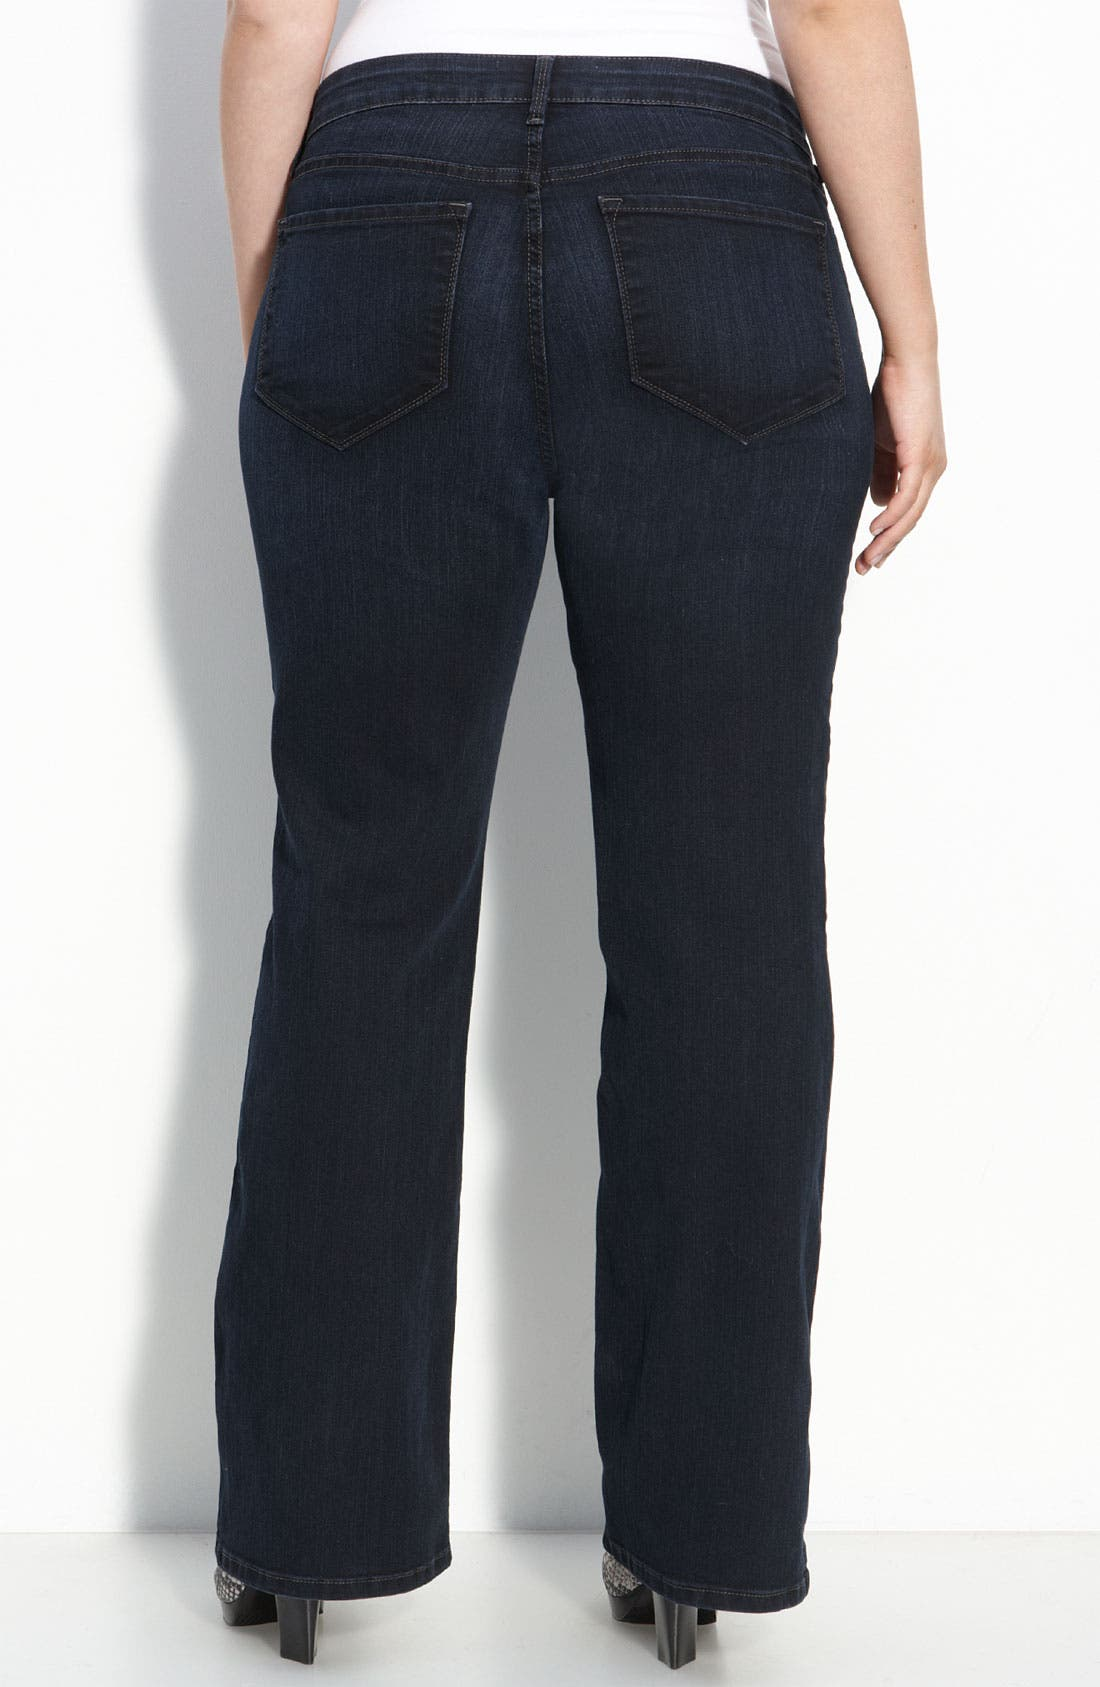 Alternate Image 2  - Not Your Daughter's Jeans® Flare Leg Stretch Jeans (Storm Wash) (Plus)